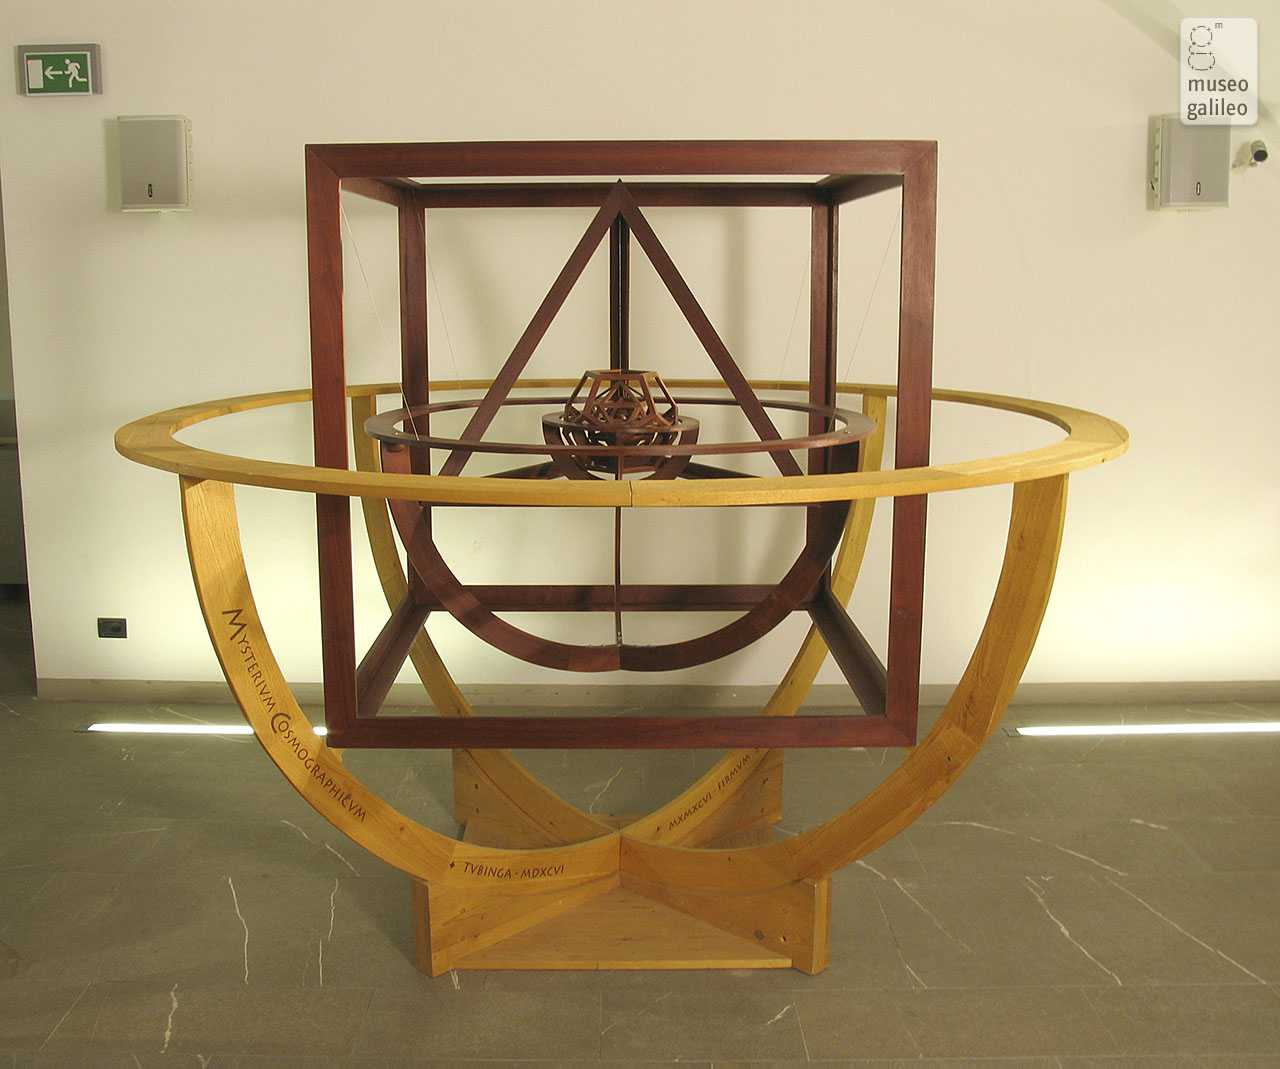 The Shapes of Numbers: A History of polyhedrons from Plato to Poinsot, passing through Luca Pacioli. Model of Kepler's Mysterium cosmographicum,  Florence, Museo di Storia della Scienza